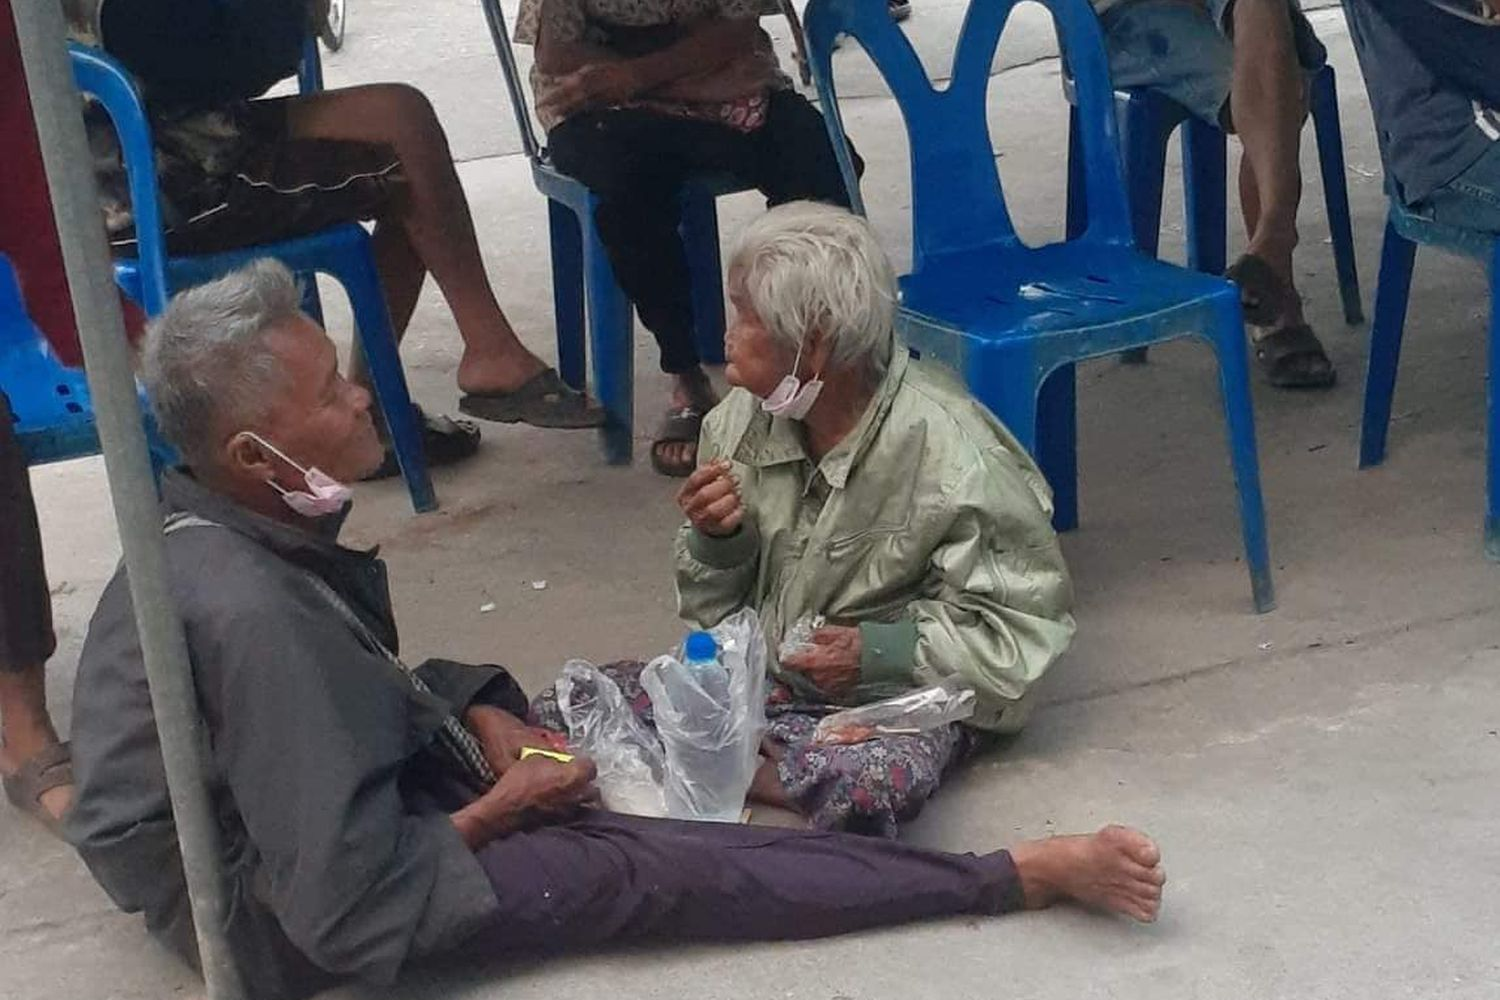 Noi Aiamsaart (right), 81, and her son Chamnian, 62, residents of Kamphaeng Phet, have lunch while waiting to register for the Rao Chana programme, which gives 7,000 baht each to eligible people to help cope with Covid-19 hardships in front of Krungthai Bank's Tha Makua branch in Kamphaeng Phet province on Tuesday. (Photo from 